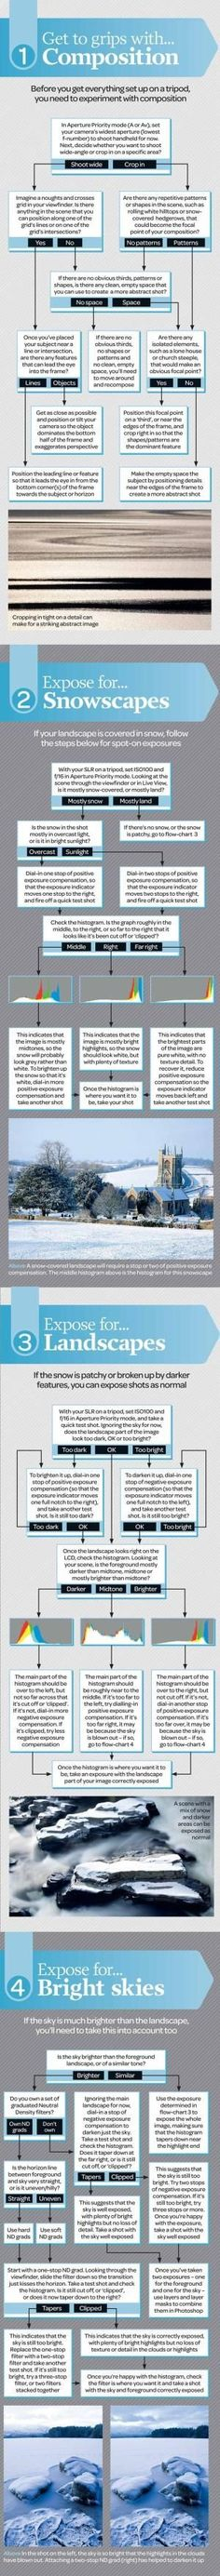 Winter landscape photography: how to compose and expose any scene by deanne